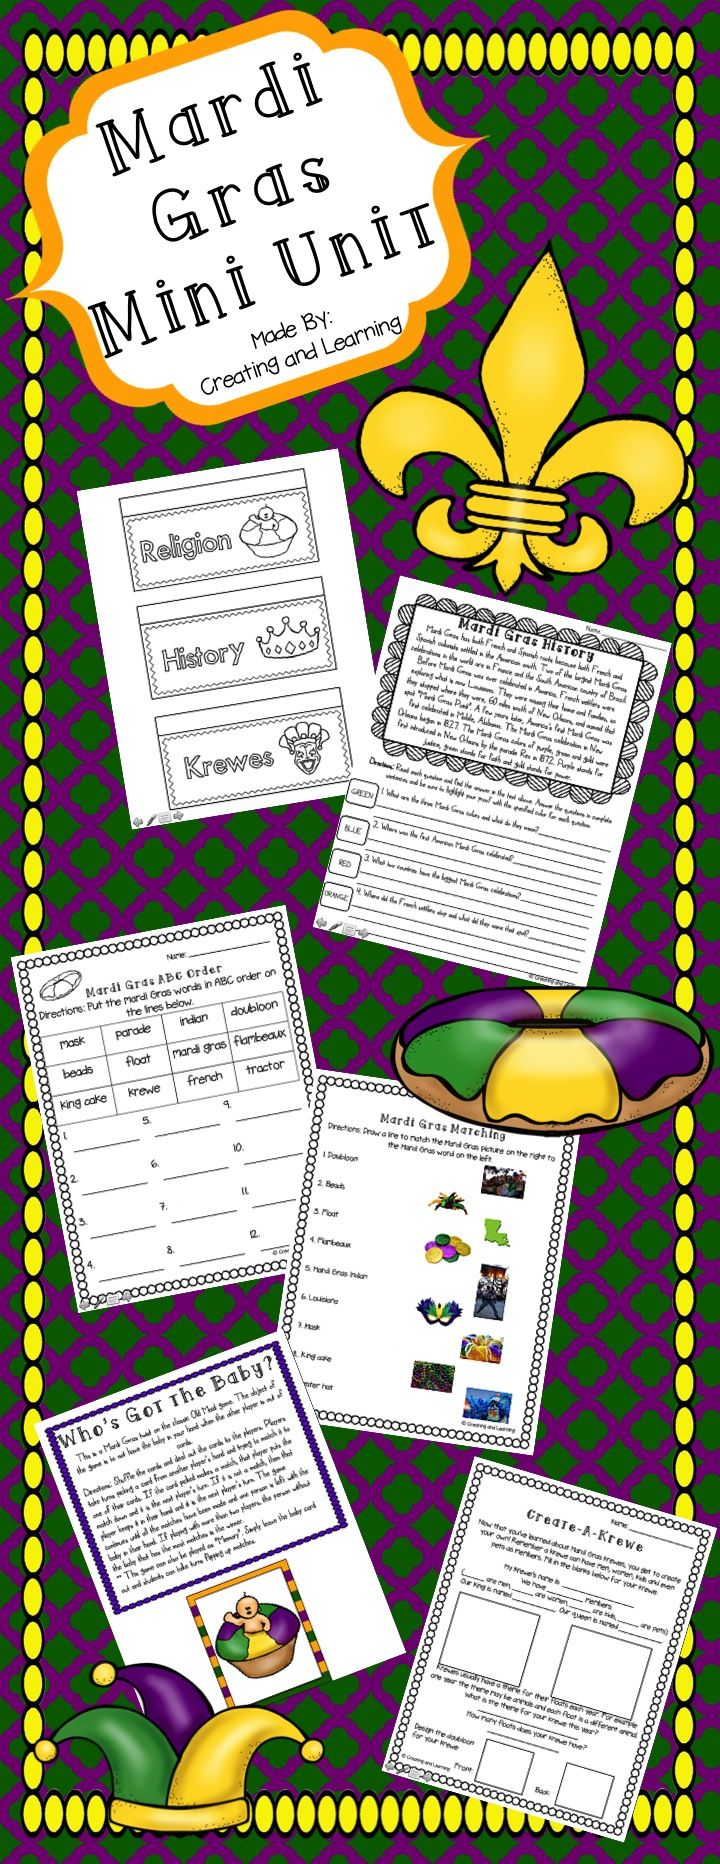 """This mini Mardi Gras unit covers the history and traditions of the holiday. Also included are some fun worksheets, a mini book and """"find the proof"""" pages. Great for 2nd-5th grades!"""